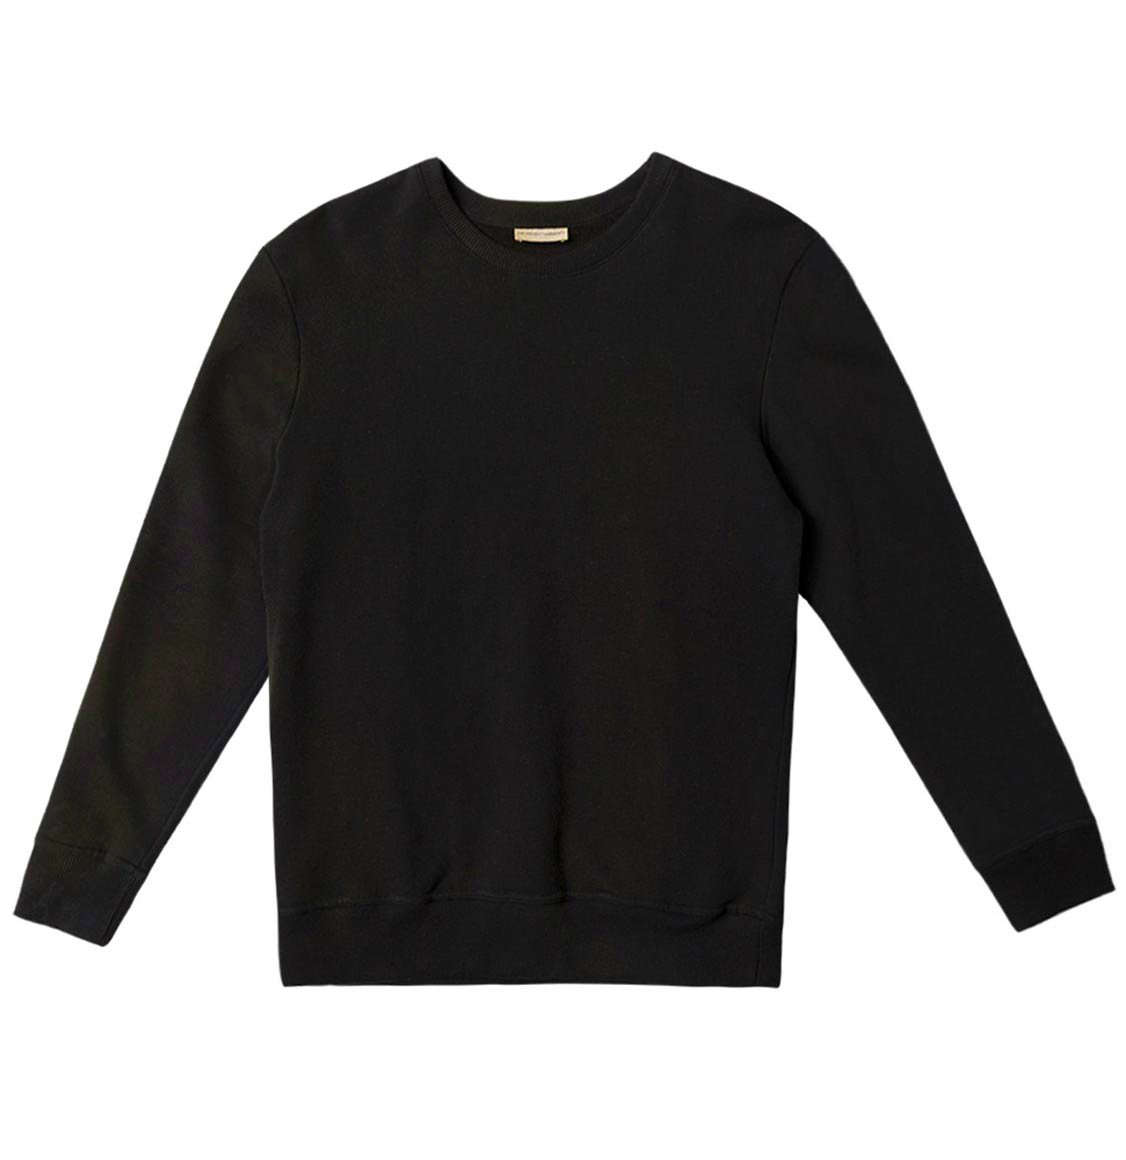 Acid Dye Organic Cotton Crew Neck Sweatshirt Black